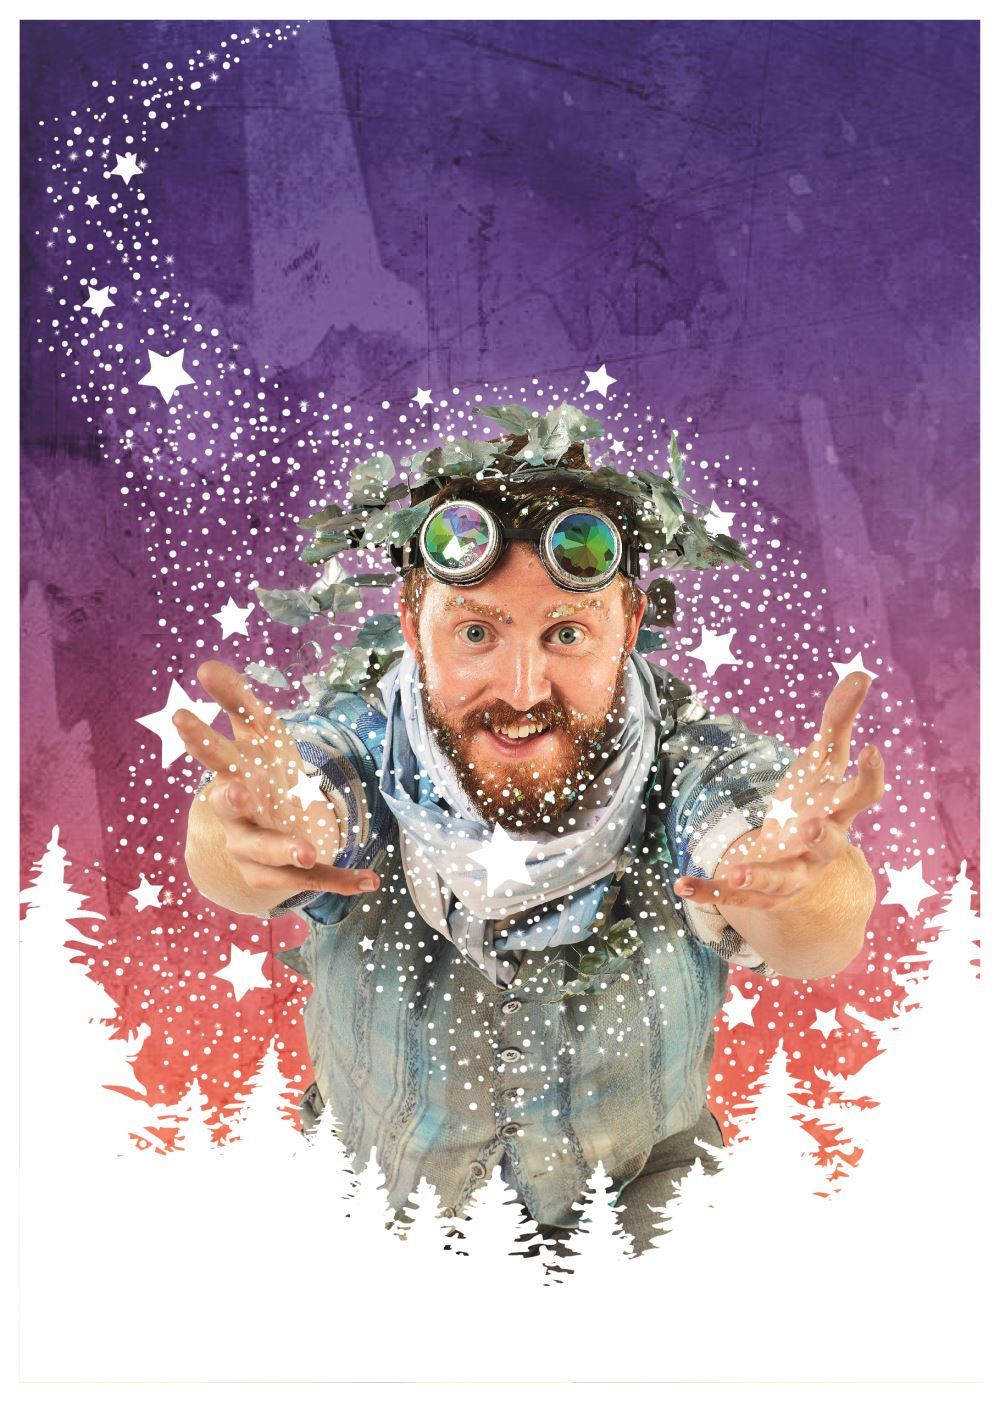 Jack Frost, A joyful Christmas Adventure 17/12 @ Otley Courthouse